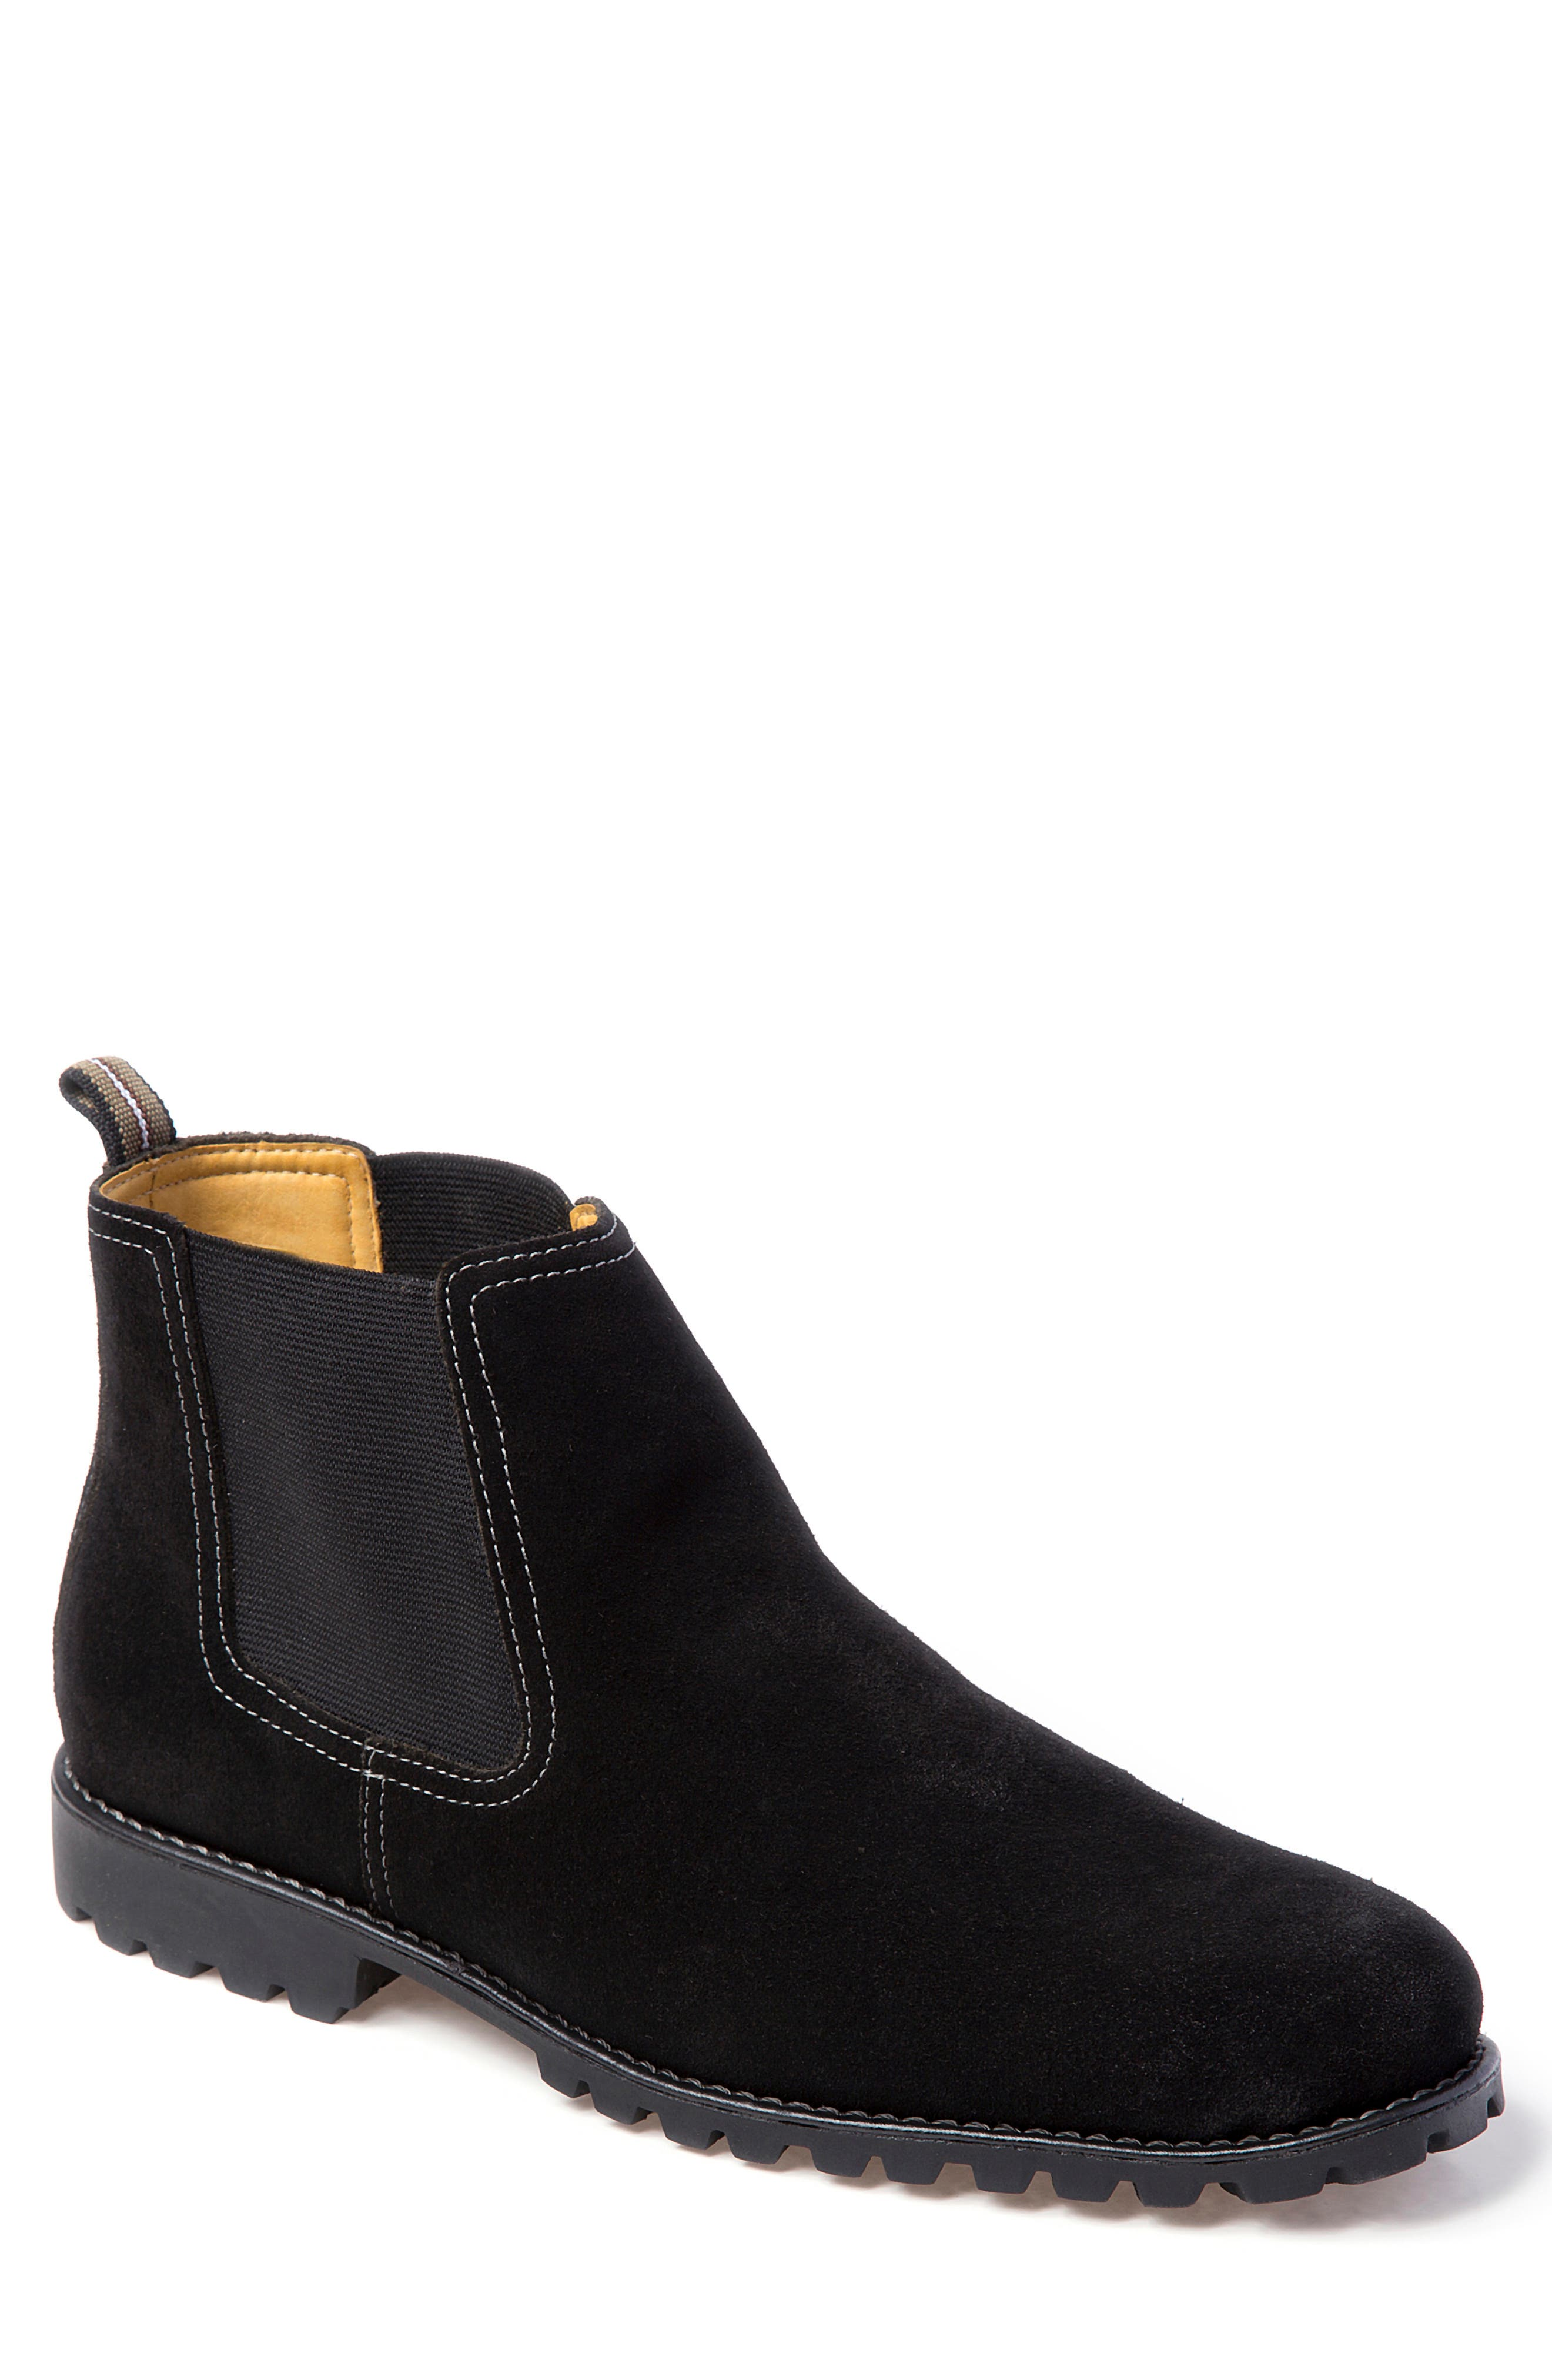 Sandro Moscoloni Cyrus Lugged Chelsea Boot - Black